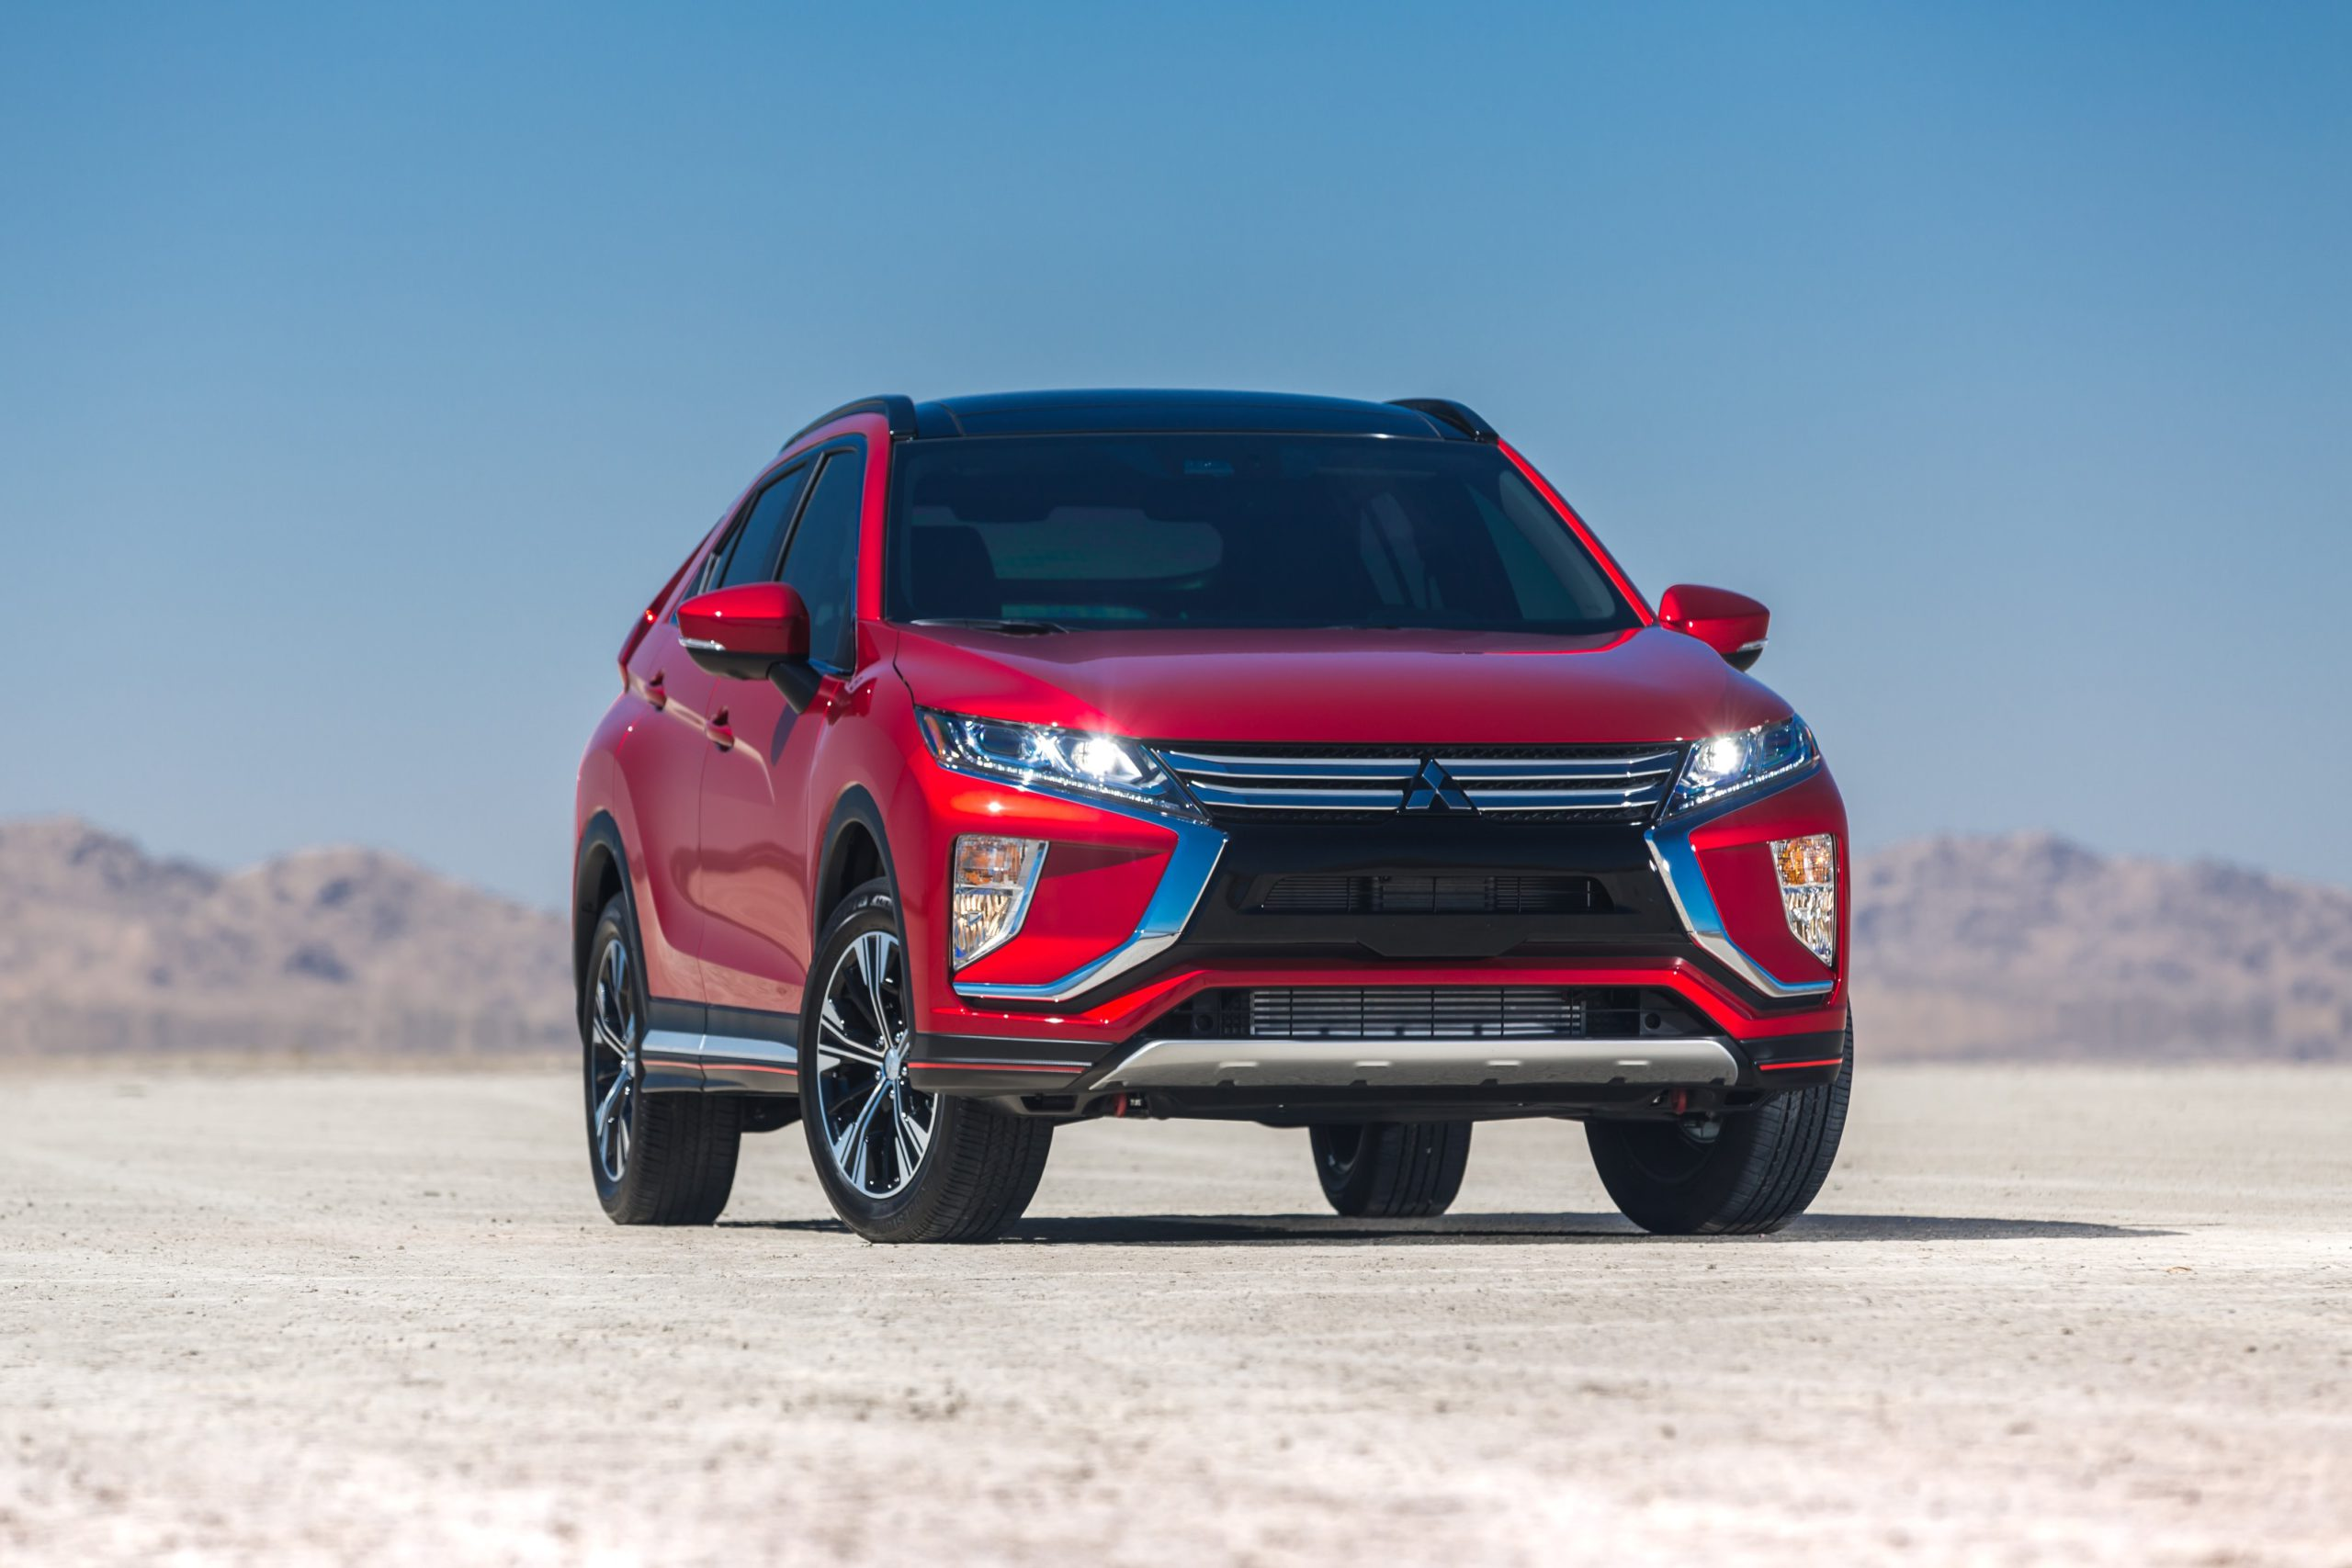 ALL-NEW 2018 MITSUBISHI ECLIPSE CROSS ARRIVES IN CANADIAN SHOWROOMS NEXT MARCH